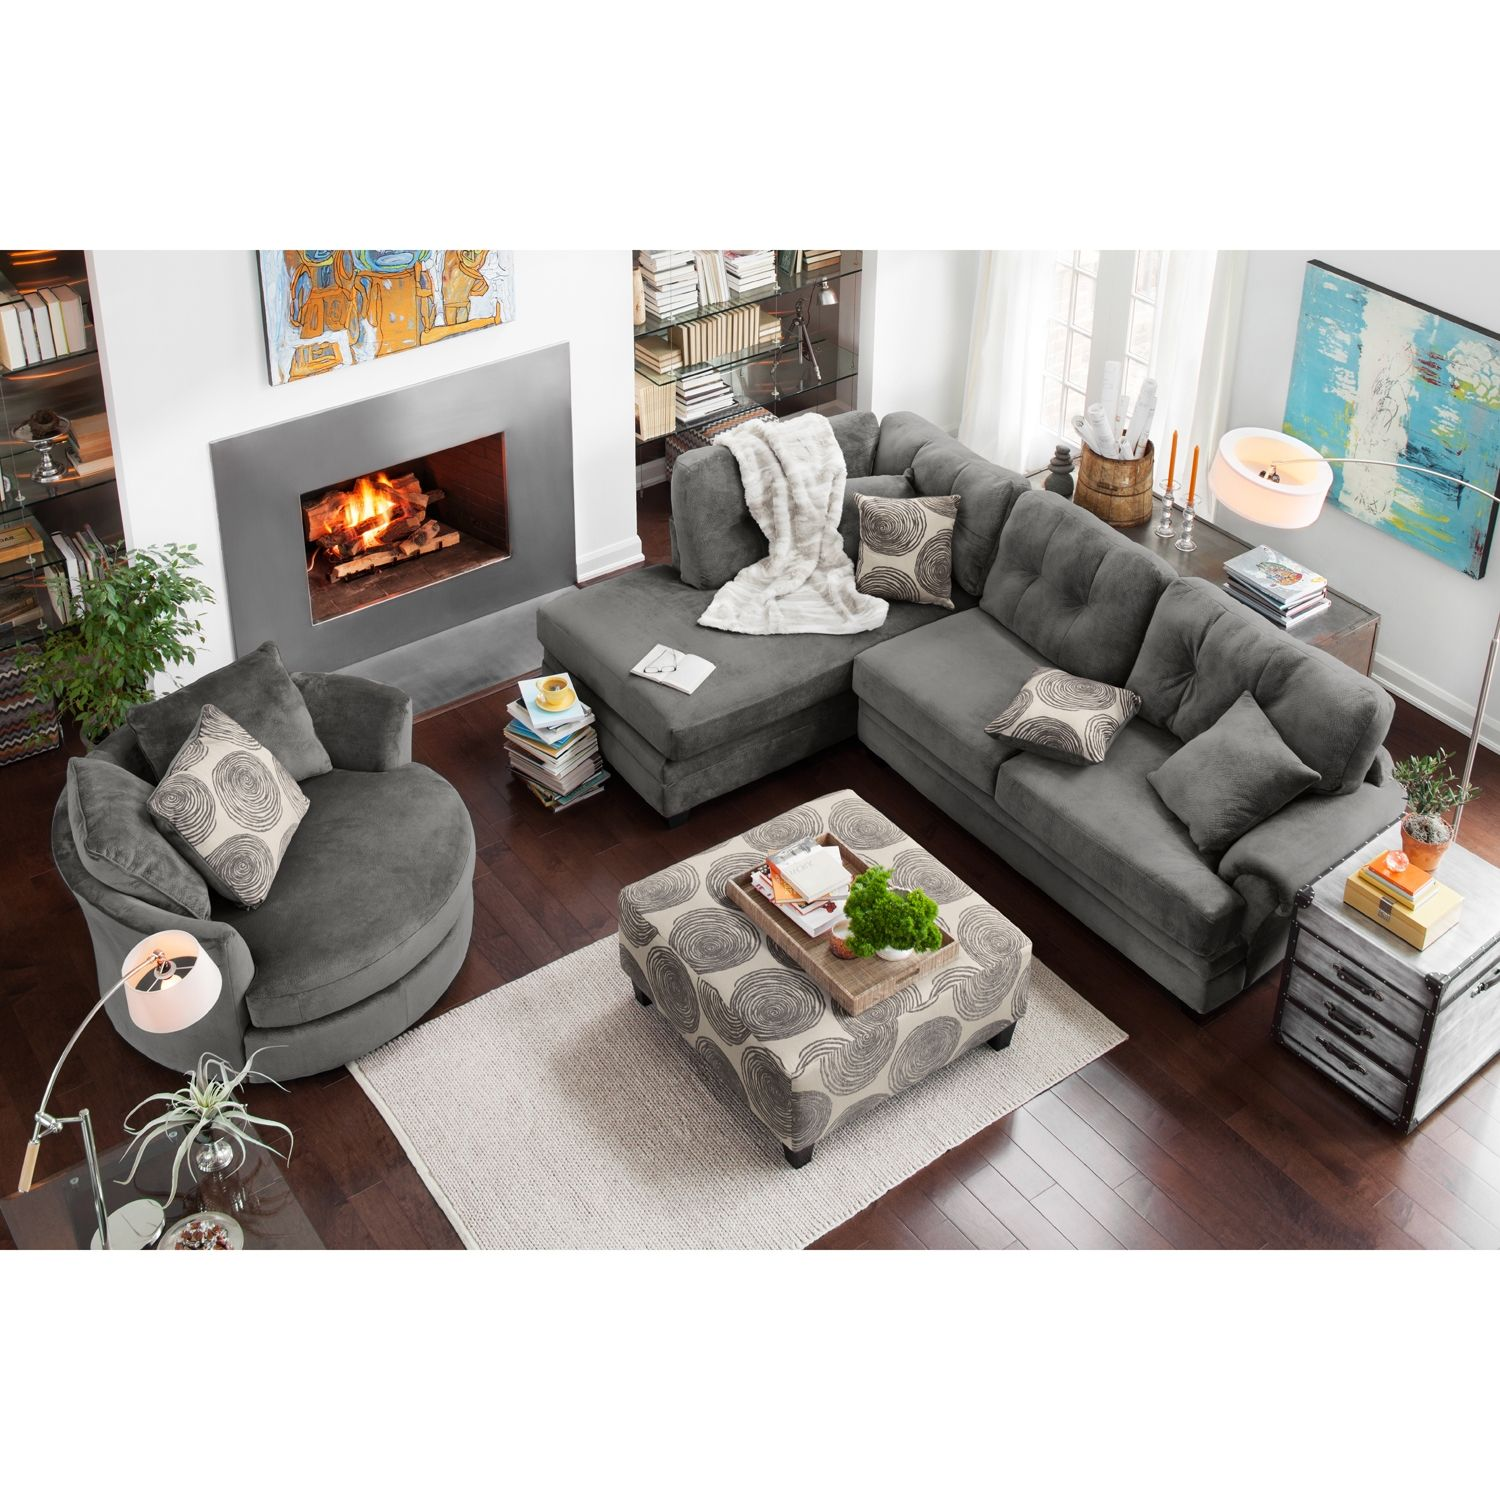 marco gray chaise sofa back cushion designs living room furniture cordelle 2 piece left facing